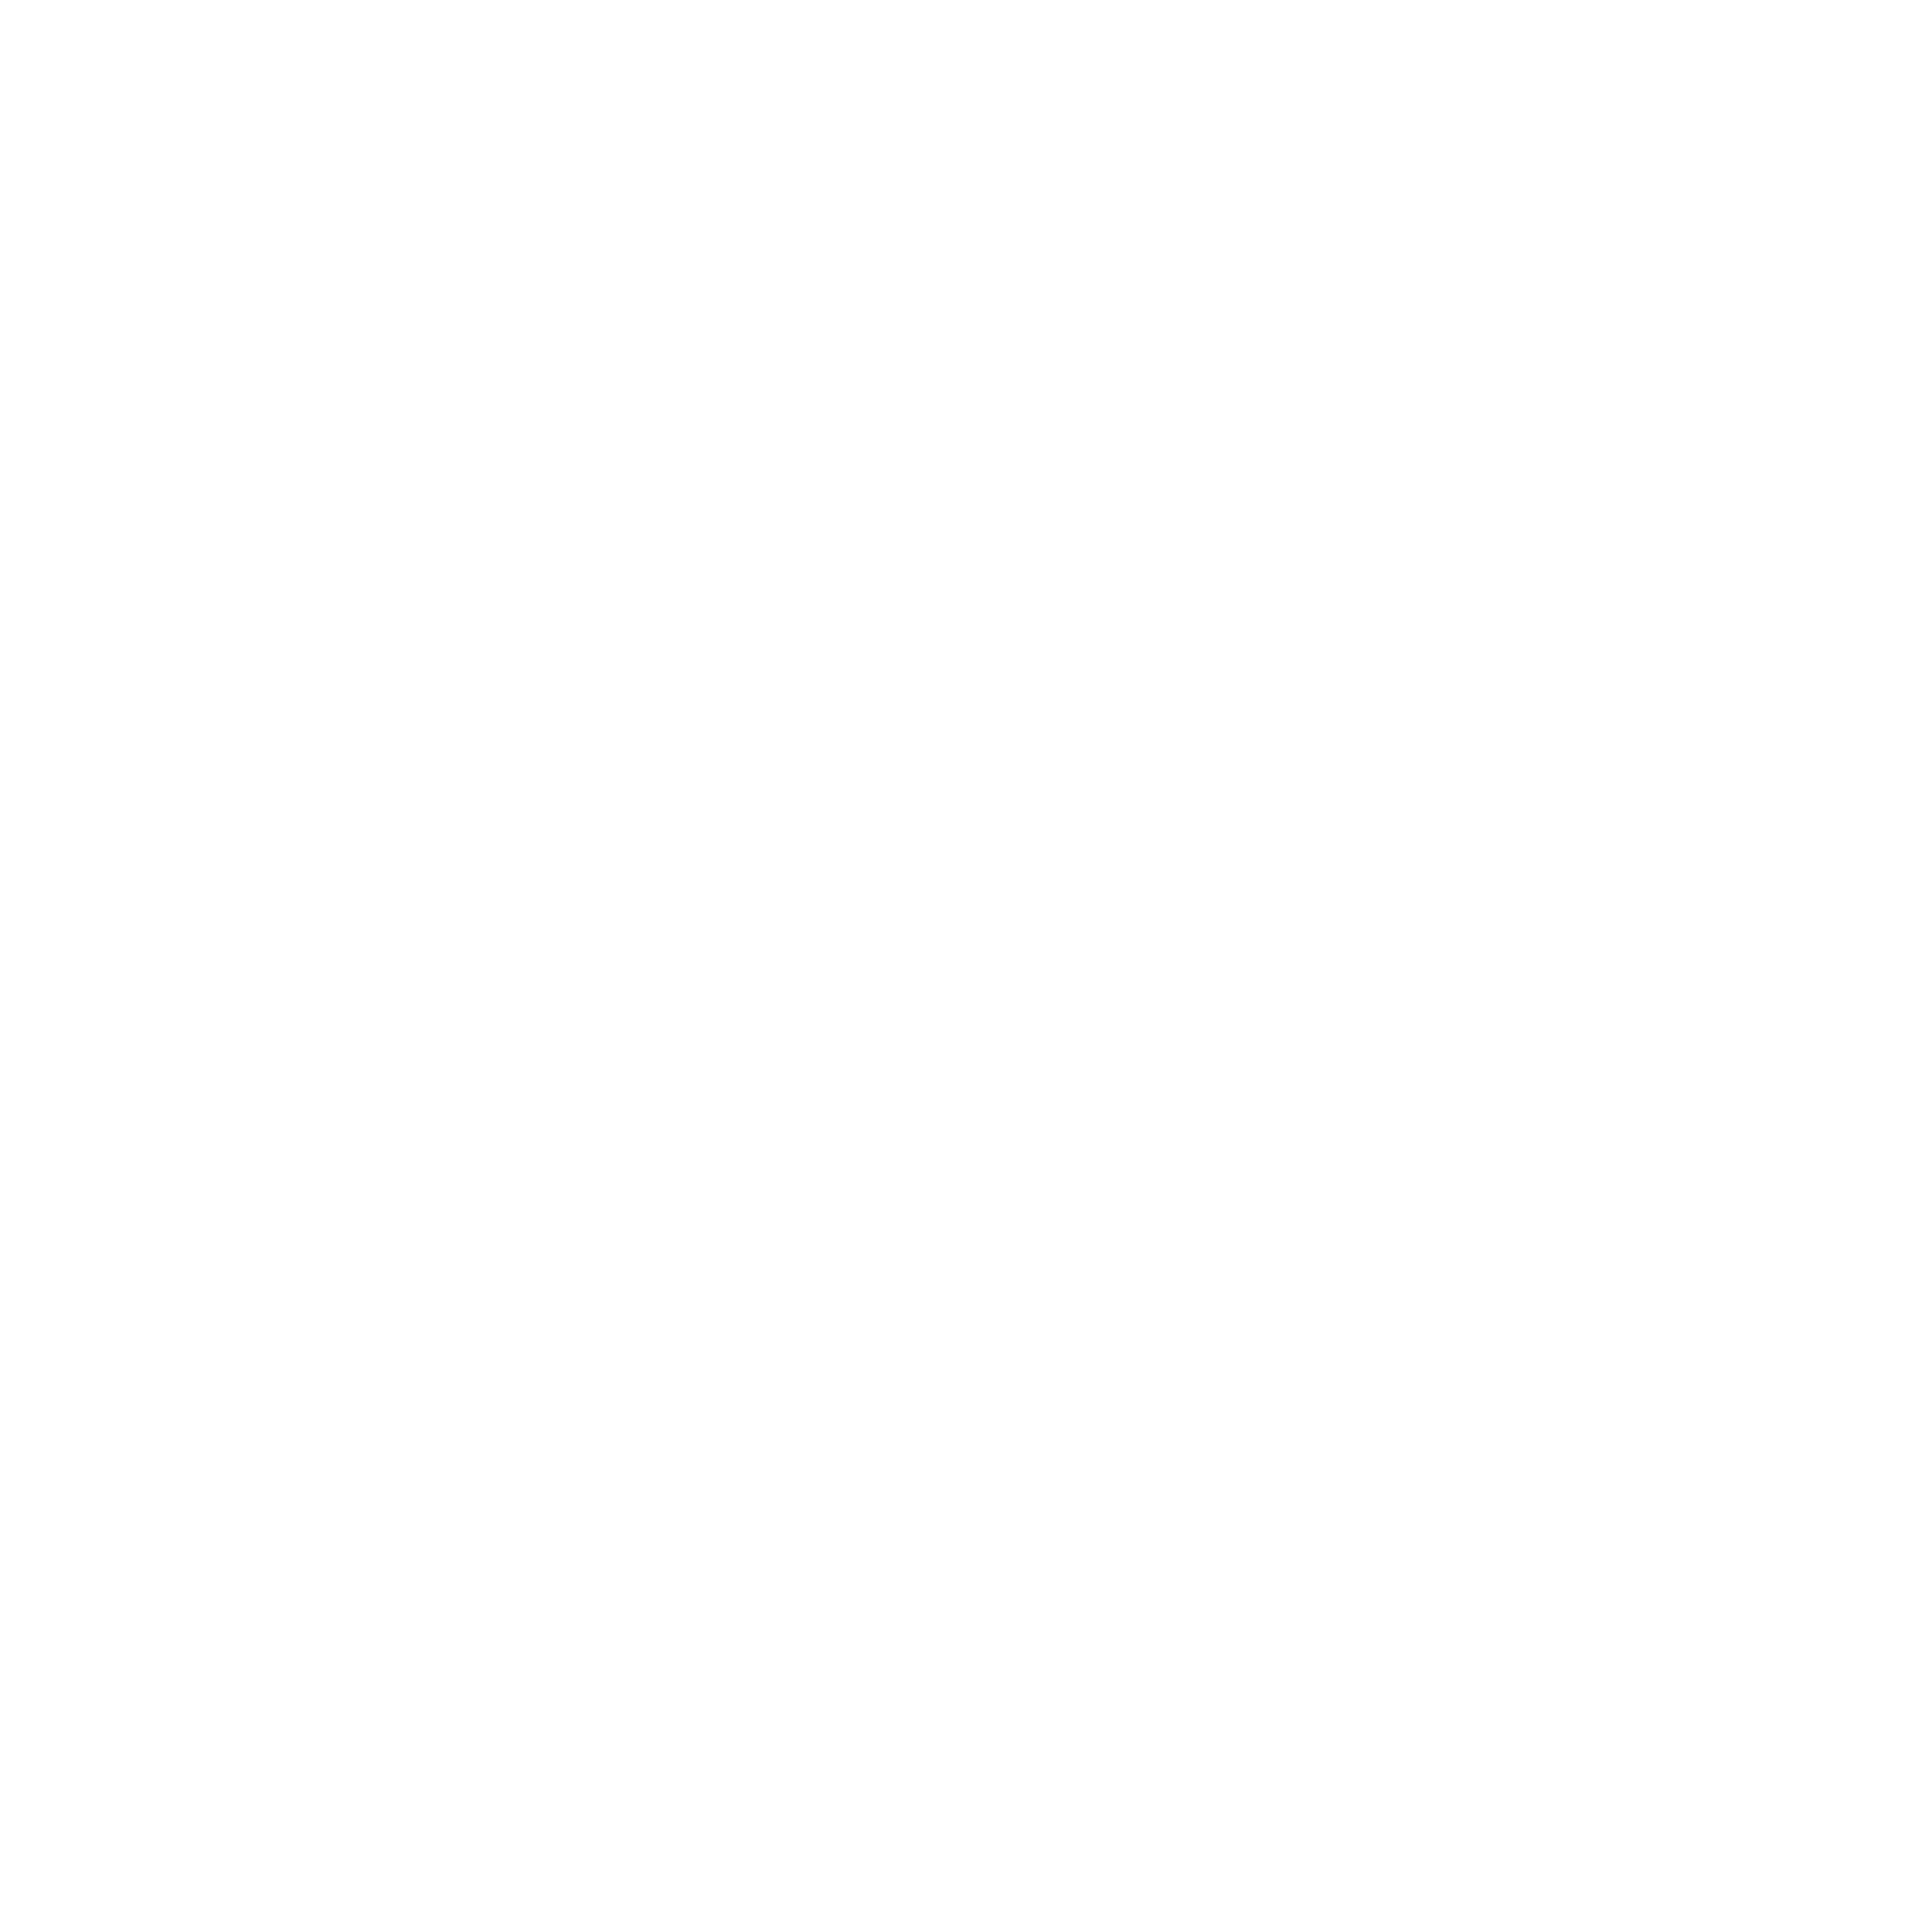 Atol Protected PNG-PlusPNG pluspng.com-2283 - Atol Protected PNG - Atol Protected Vector PNG